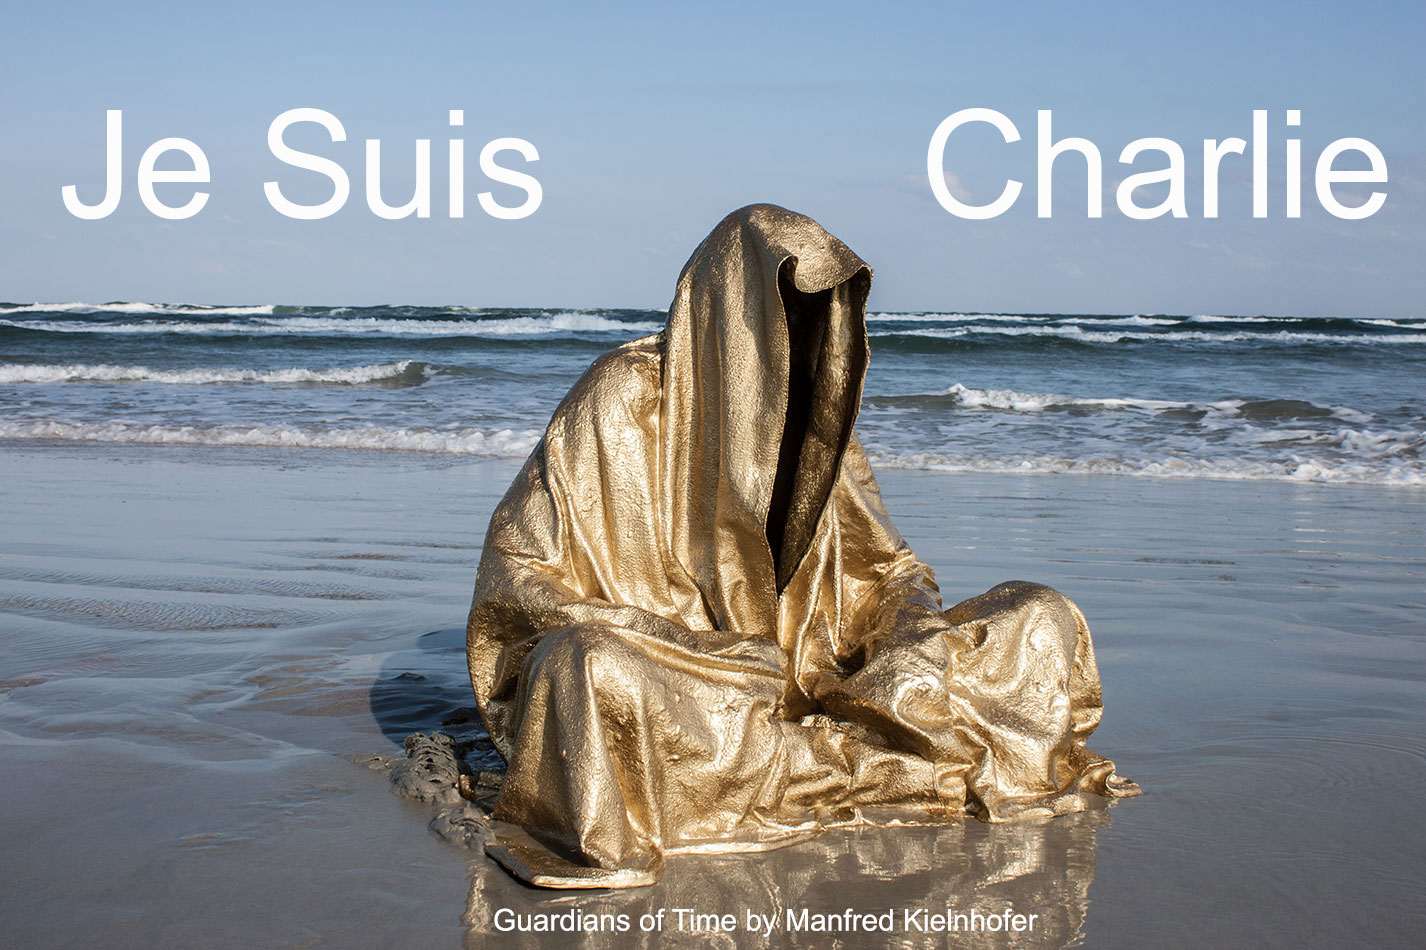 Je-Suis-Charlie-freedom-of-speech-guardians-of-time-manfred-kili-kielnhofer-contemporary-fine-art-modern-arts-design-antiques-sculpture-5207